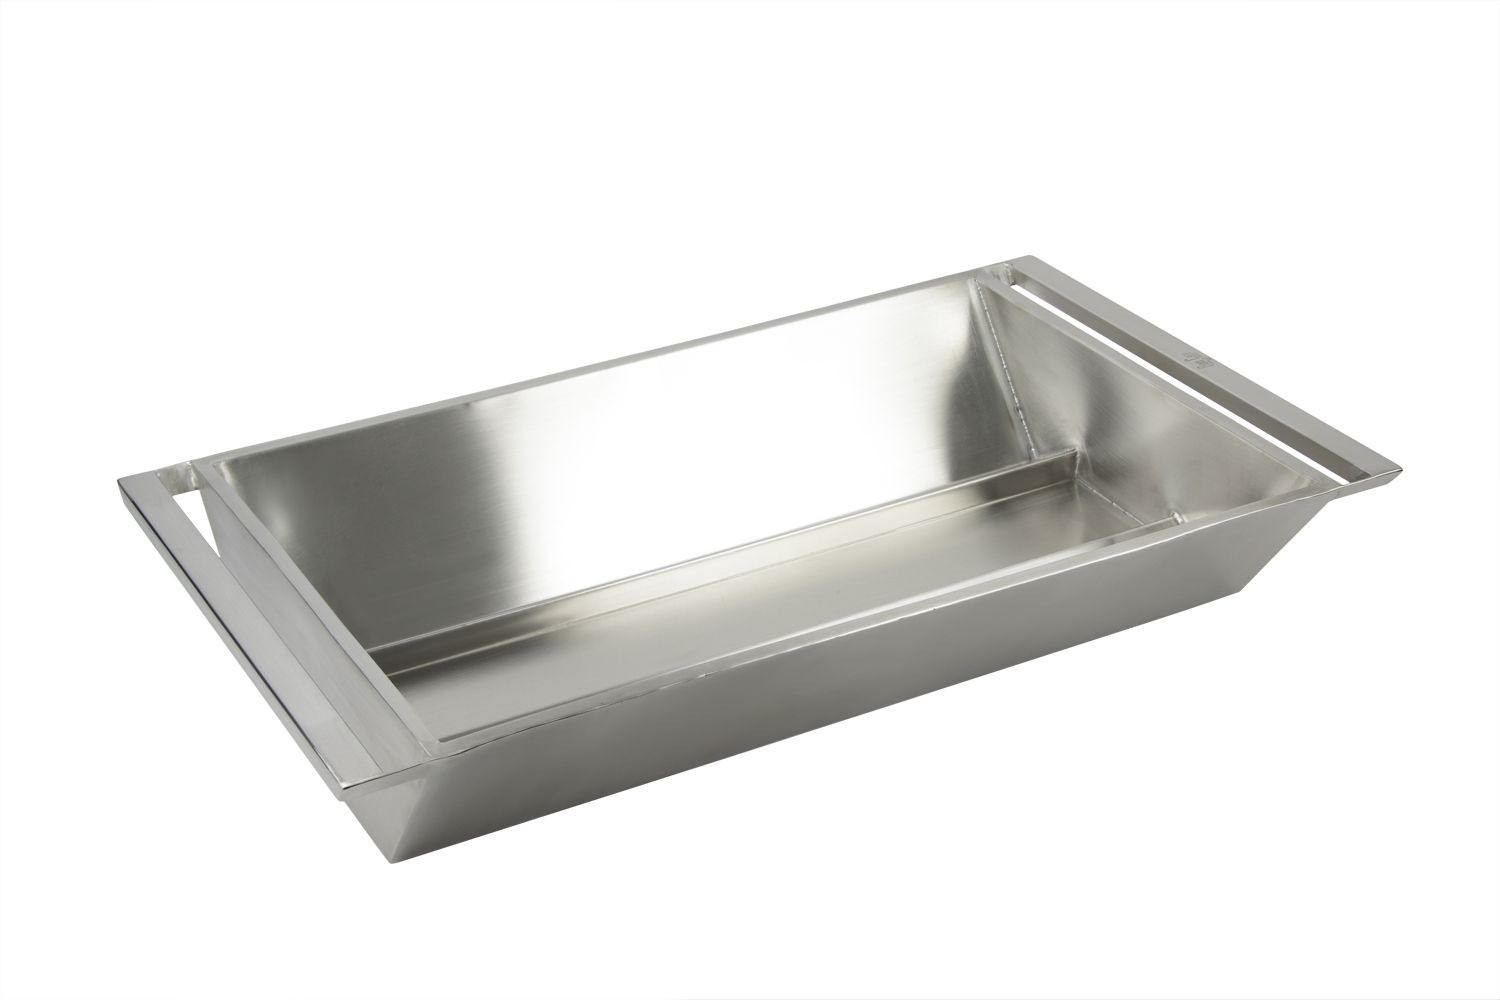 "Bon Chef 61284 Stainless Steel Rectangular Double-Walled Beverage Tub, 34 7/8"" x 19 3/4"" x 6 1/4"""